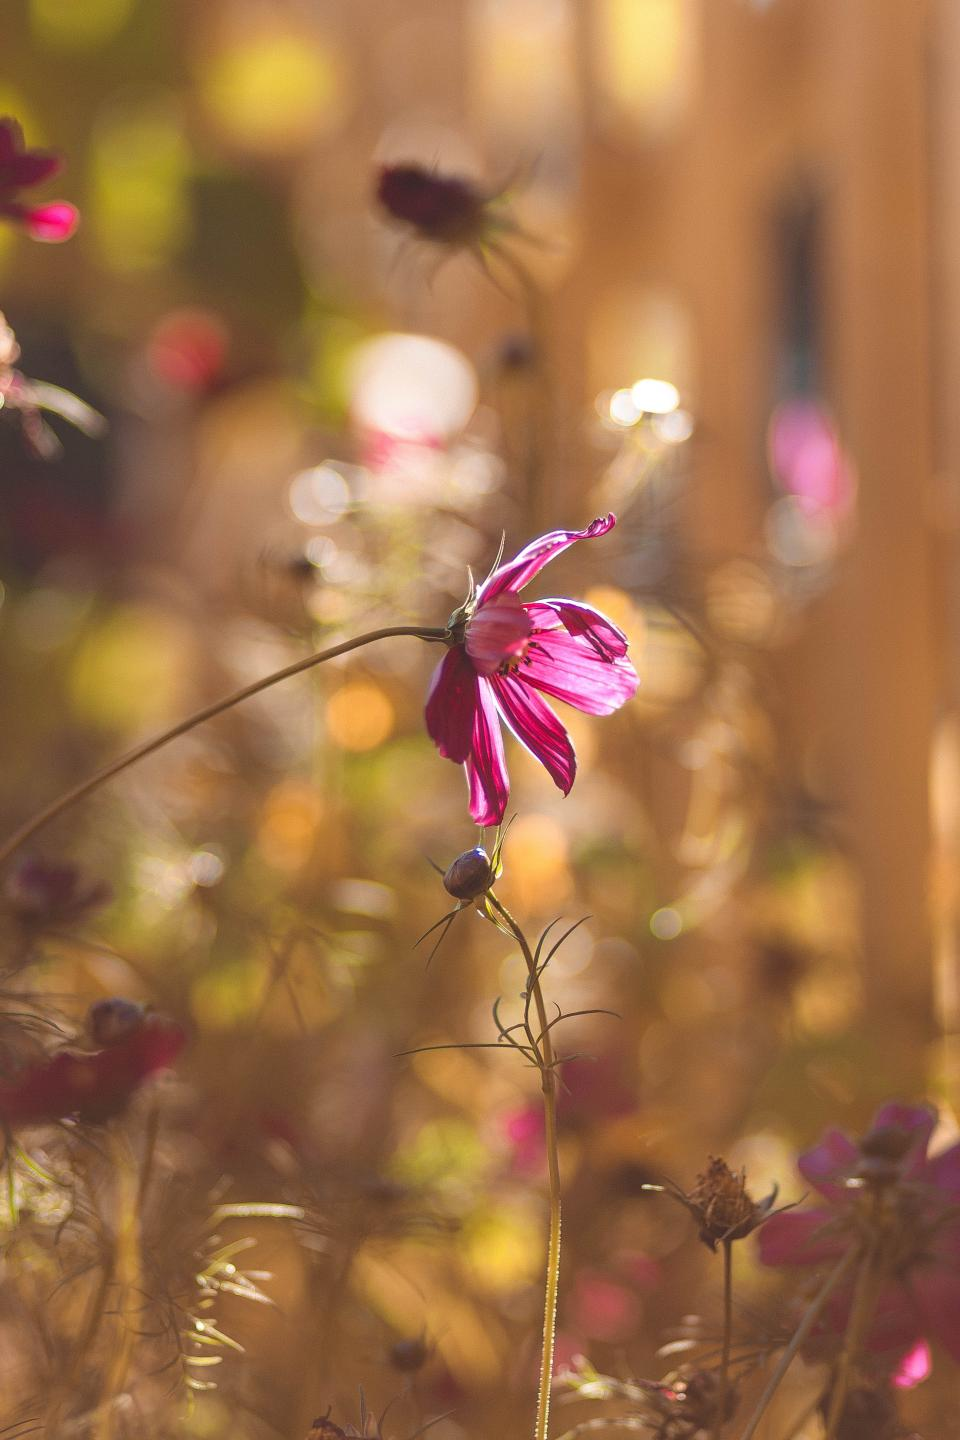 flowers, nature, blossoms, branches, bed, field, stems, stalk, petals, purple, buds, still, bokeh, outdoors, garden